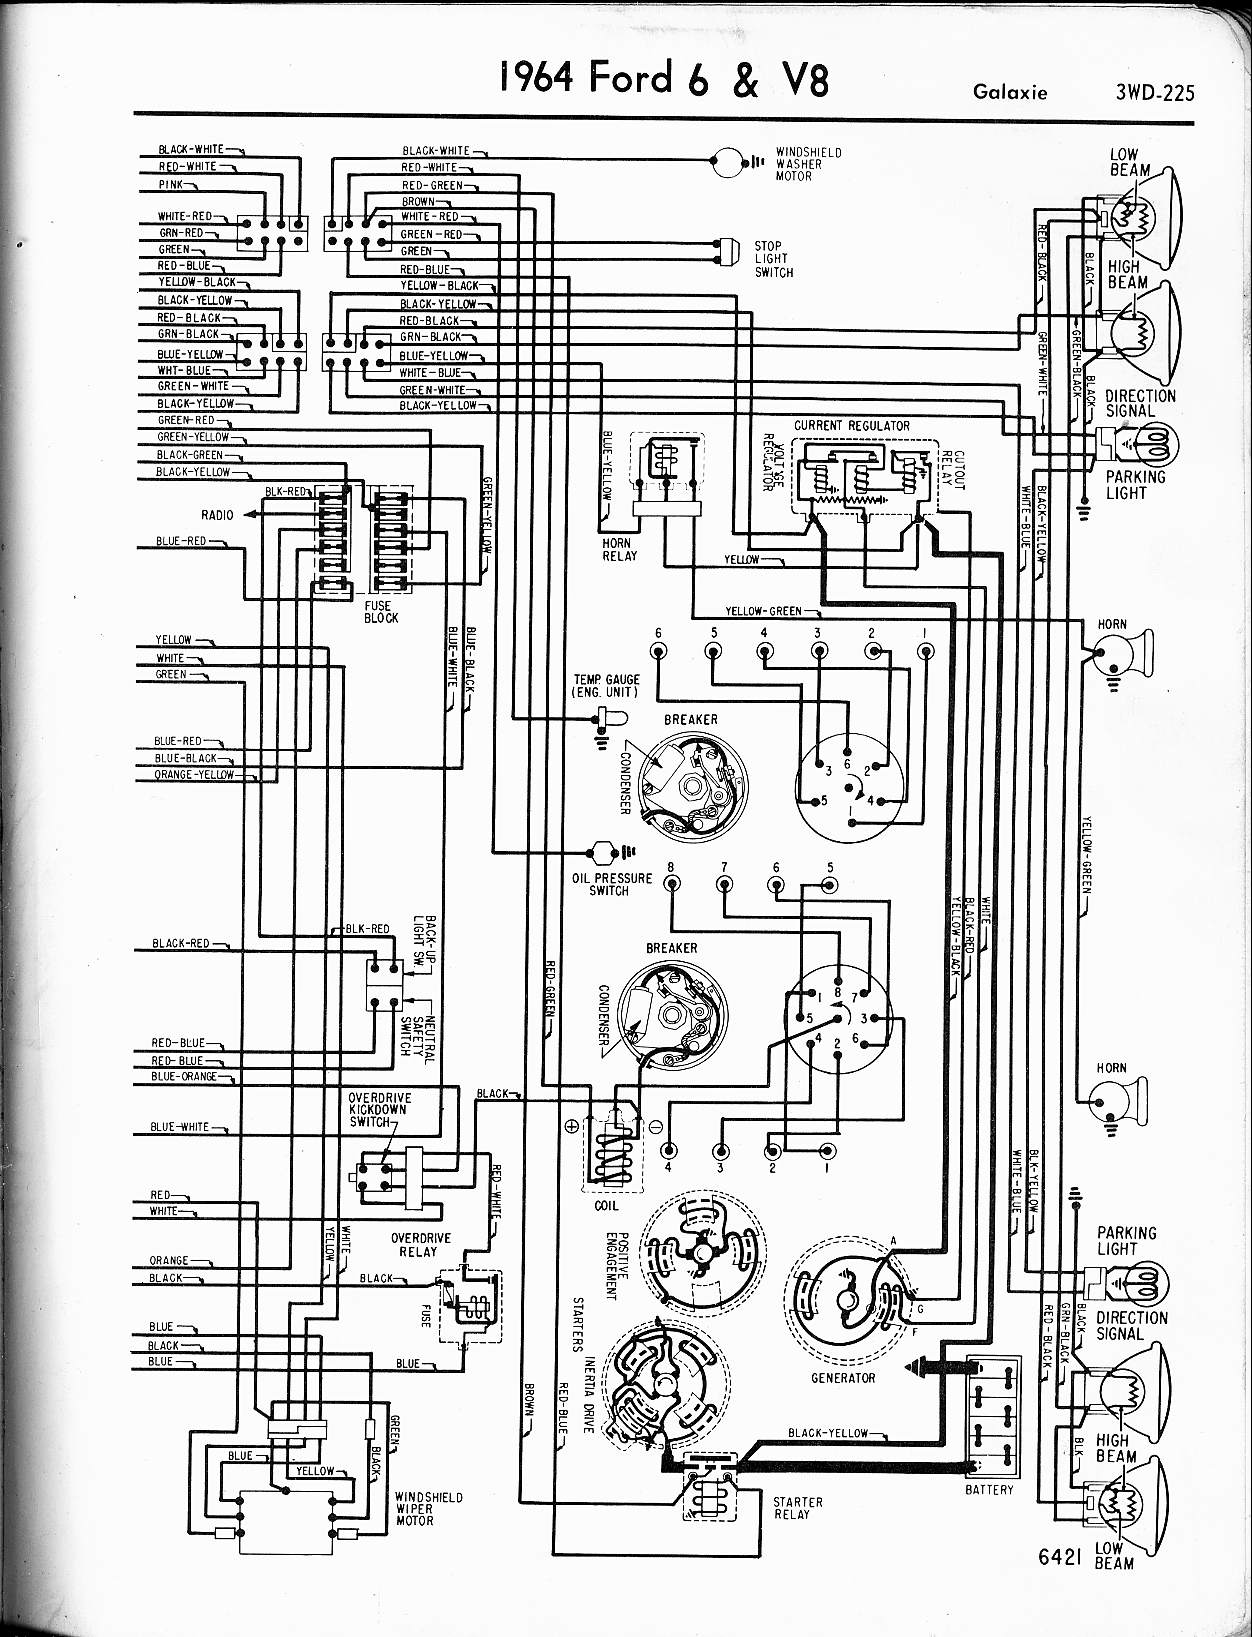 MWire5765 225 57 65 ford wiring diagrams ford car wiring diagrams at soozxer.org